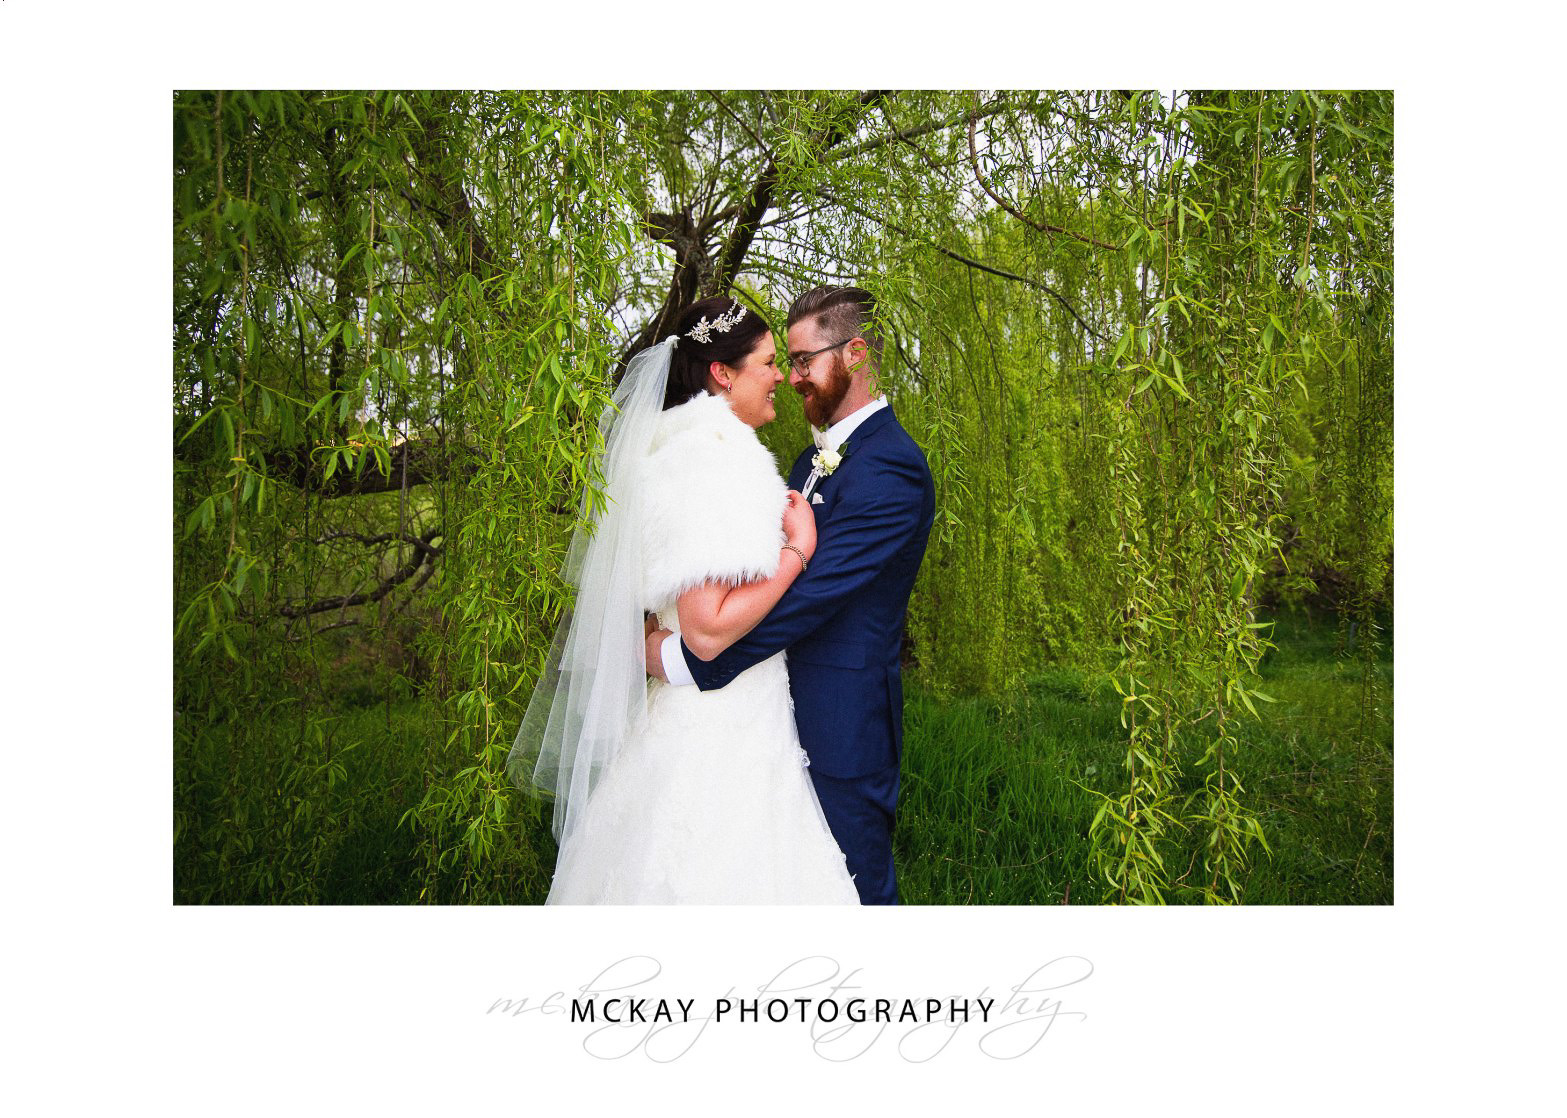 Photo in the willow tree